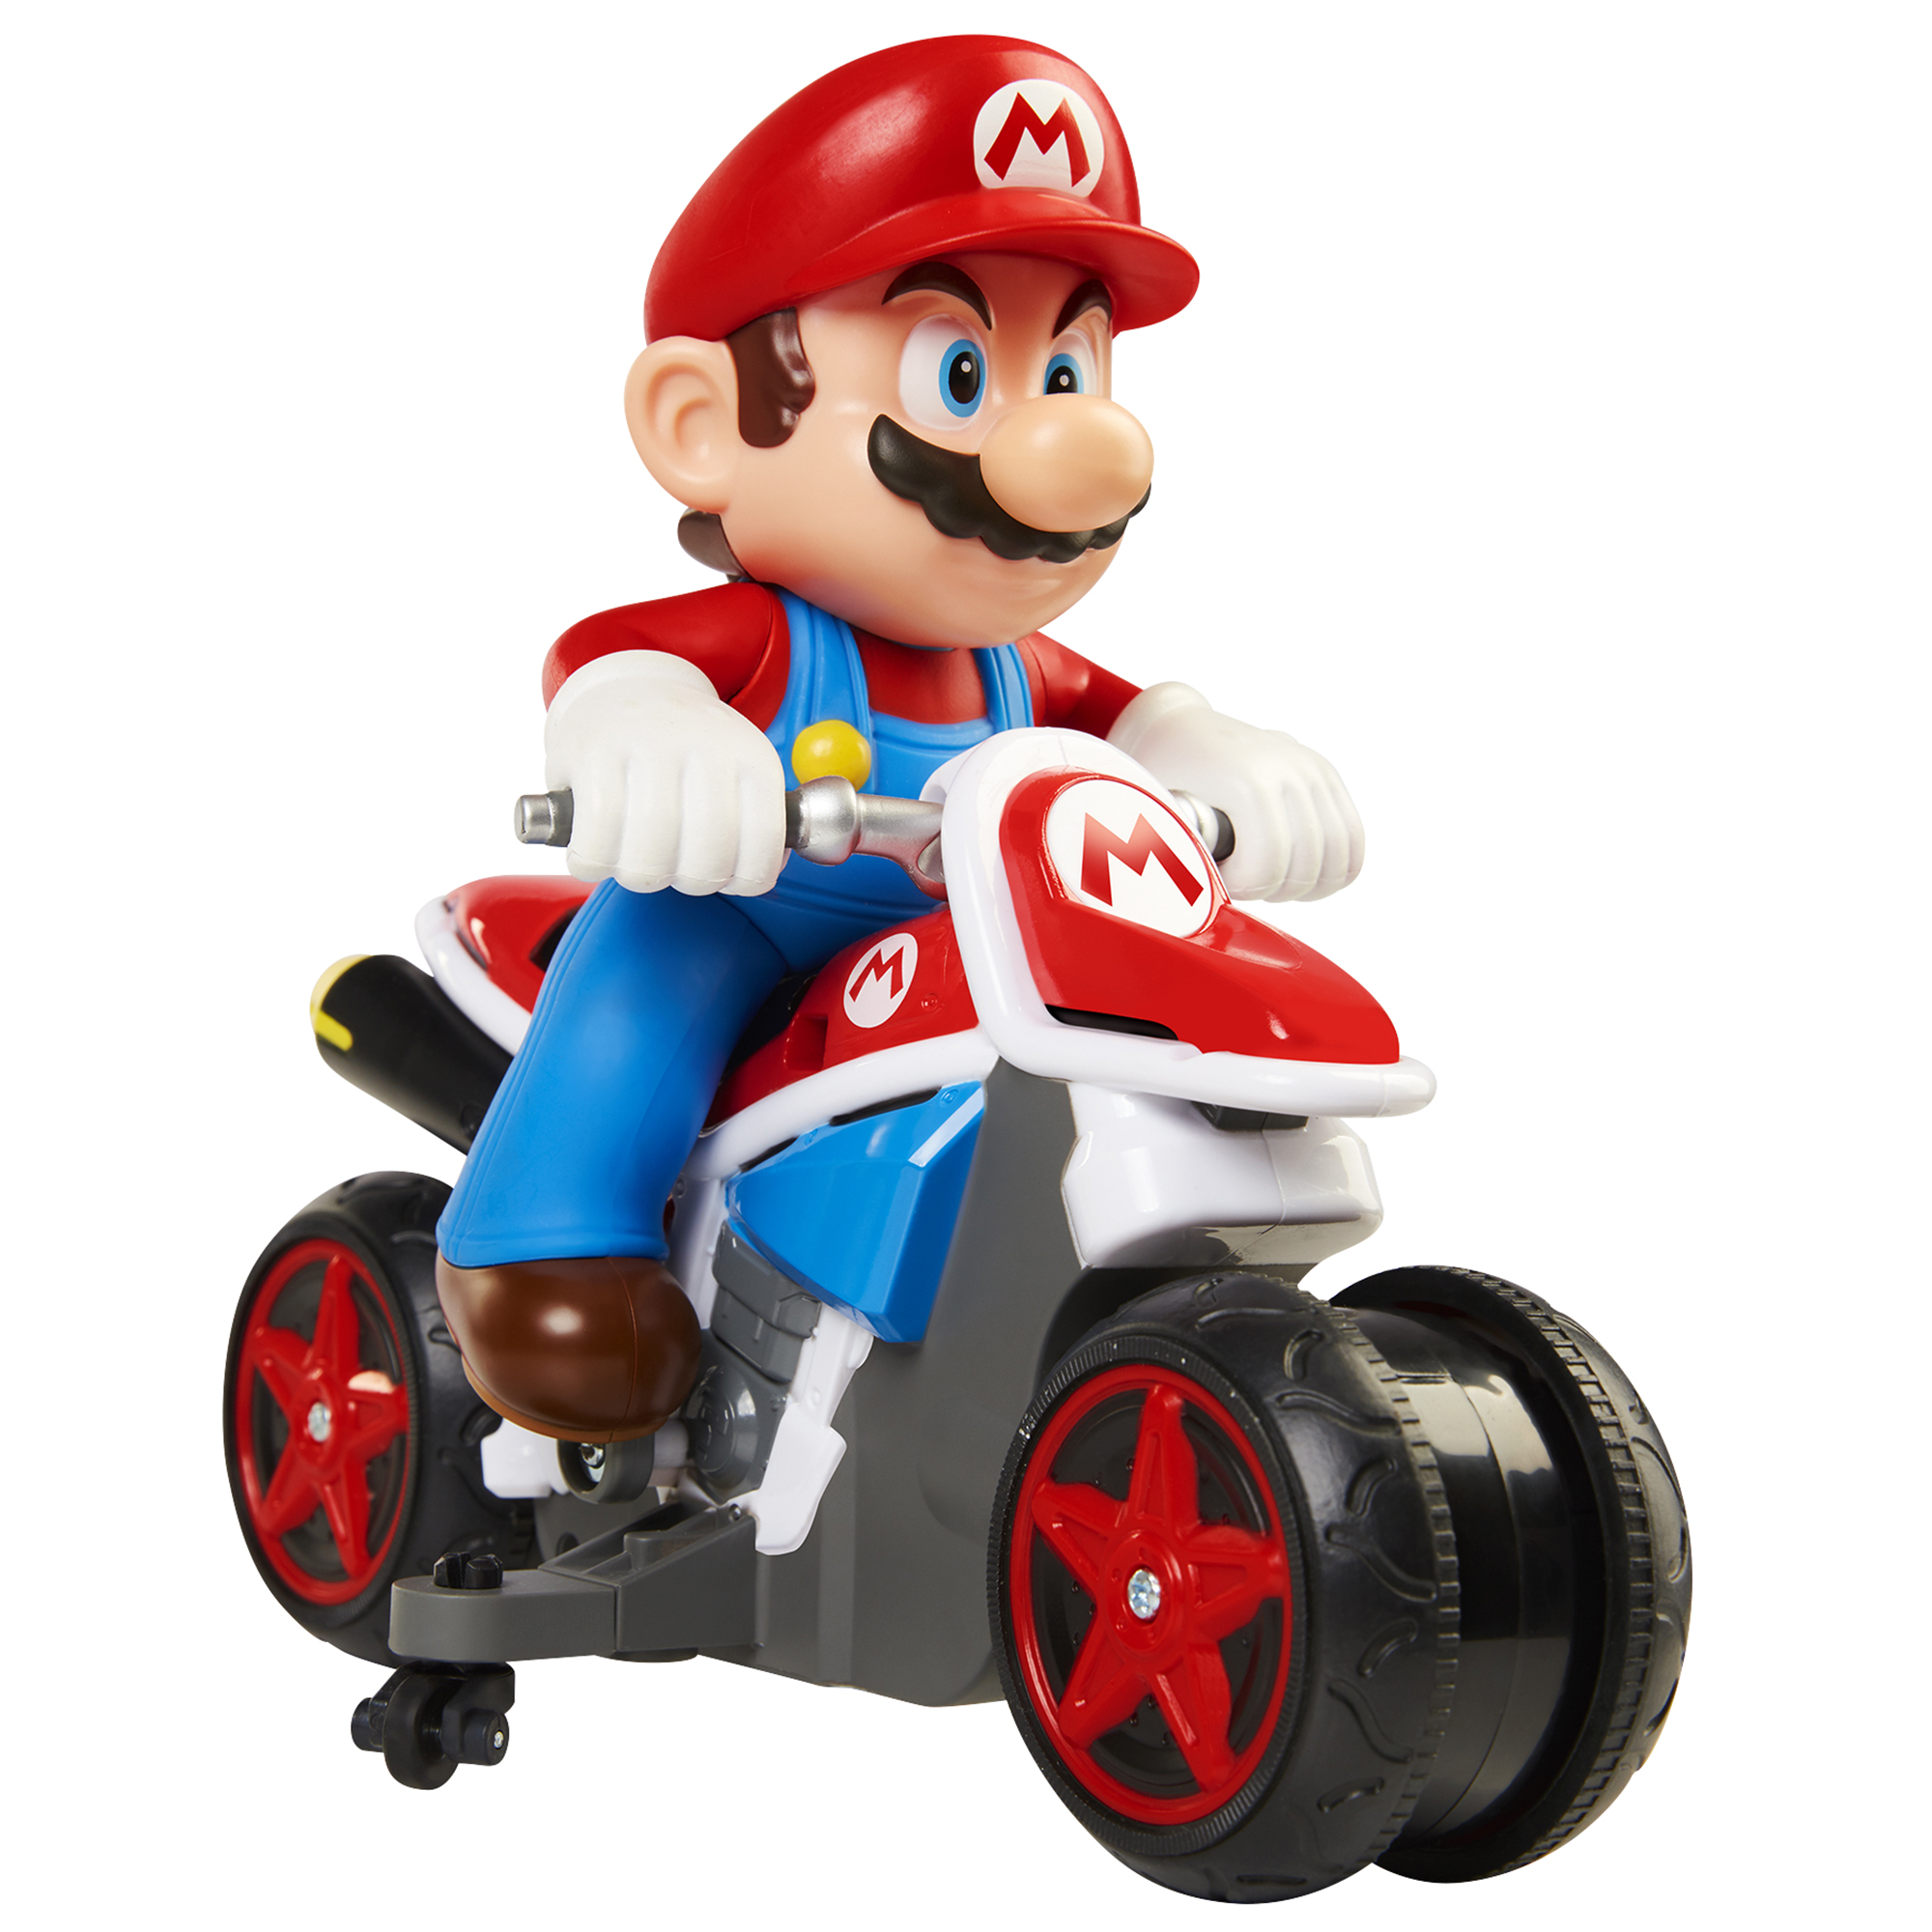 Super Mario Kart Mini Motorcycle RC Racer